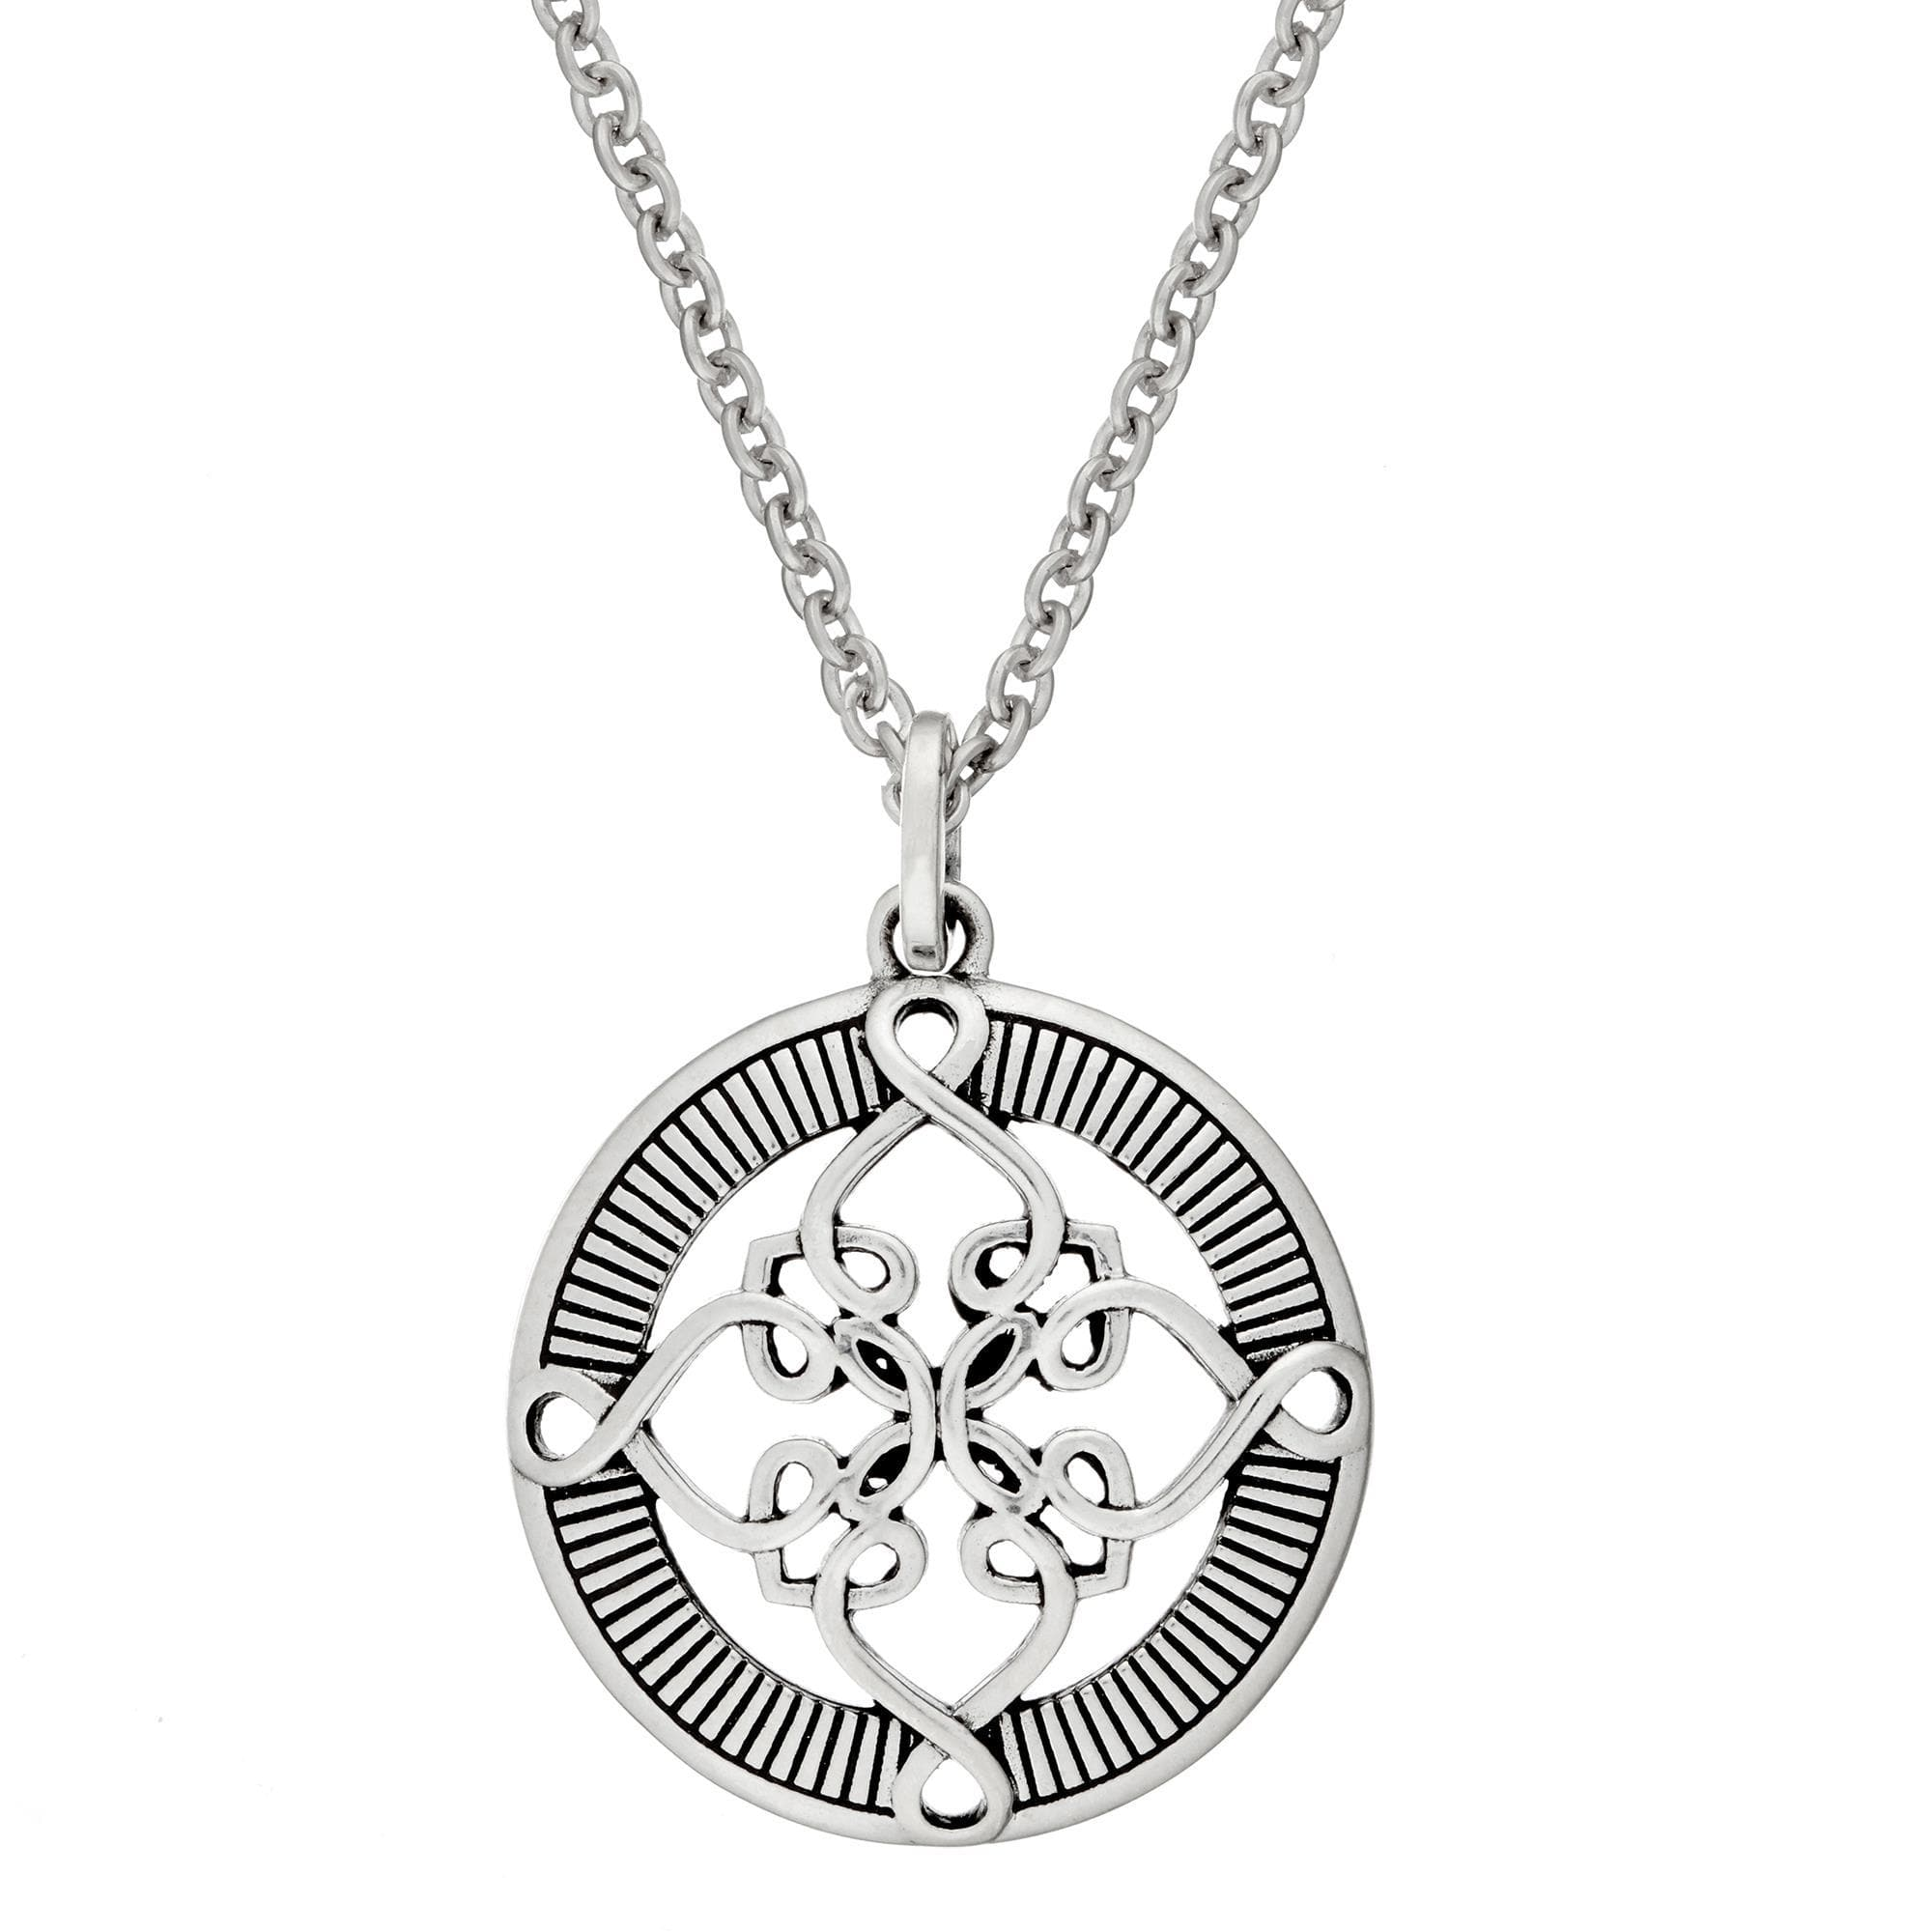 silver celtic black sun pewter itm trilogy pendant necklace jewelry charm jnt ebay